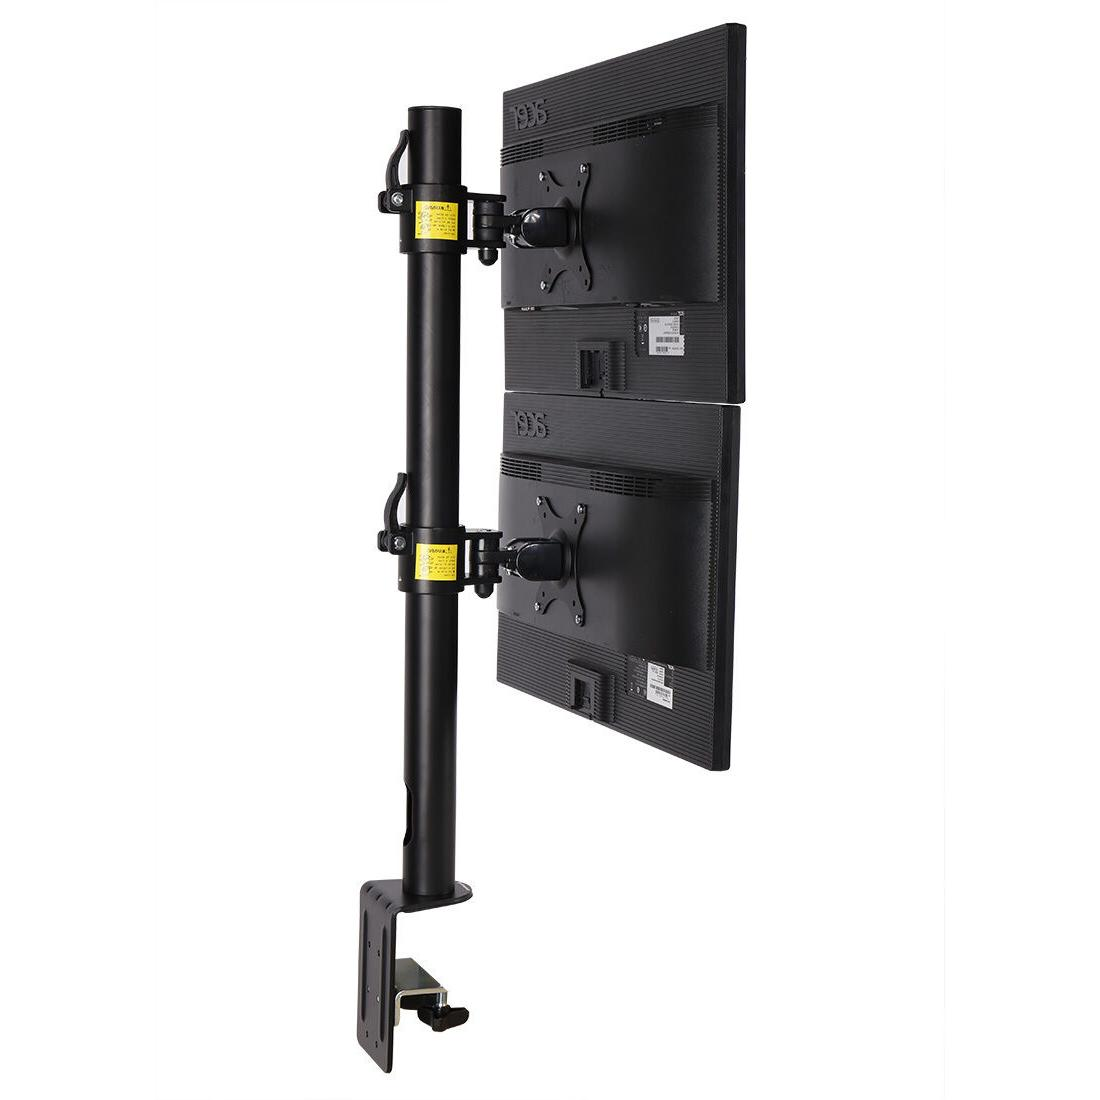 Dual Computer Monitor Desk Mount Stand Vertical Arrary for 2